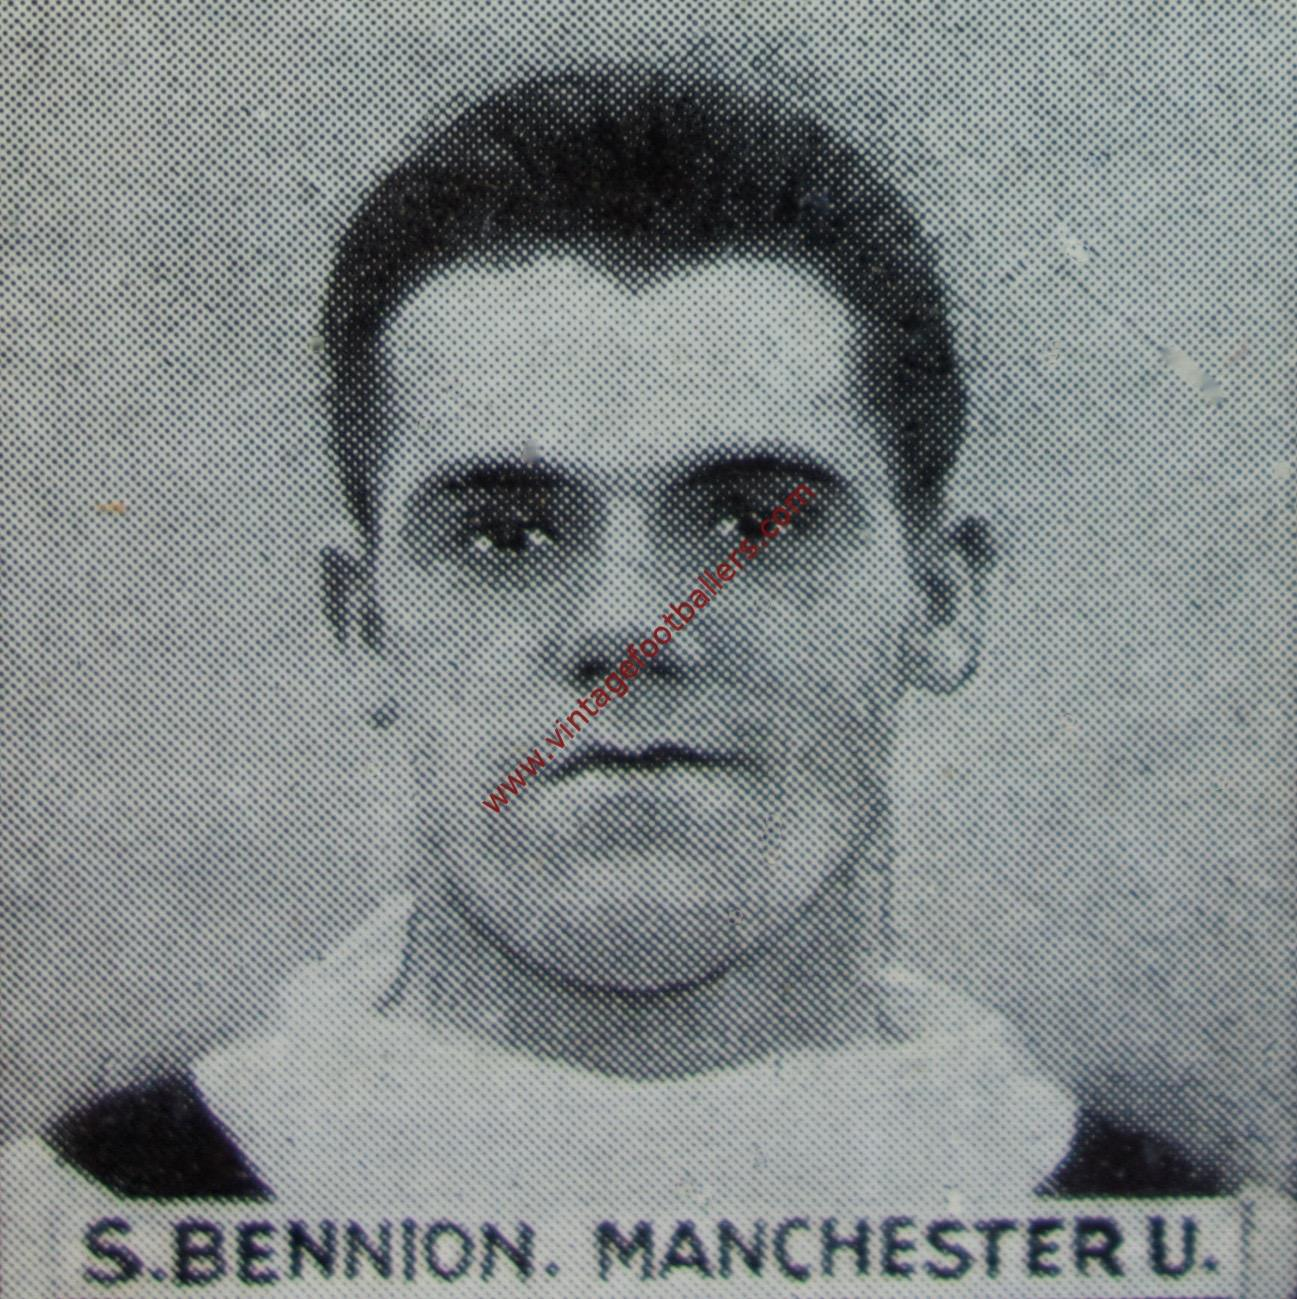 ae62aa24ed3 Bennion Ray Image 4 Manchester United 1930 - Vintage Footballers